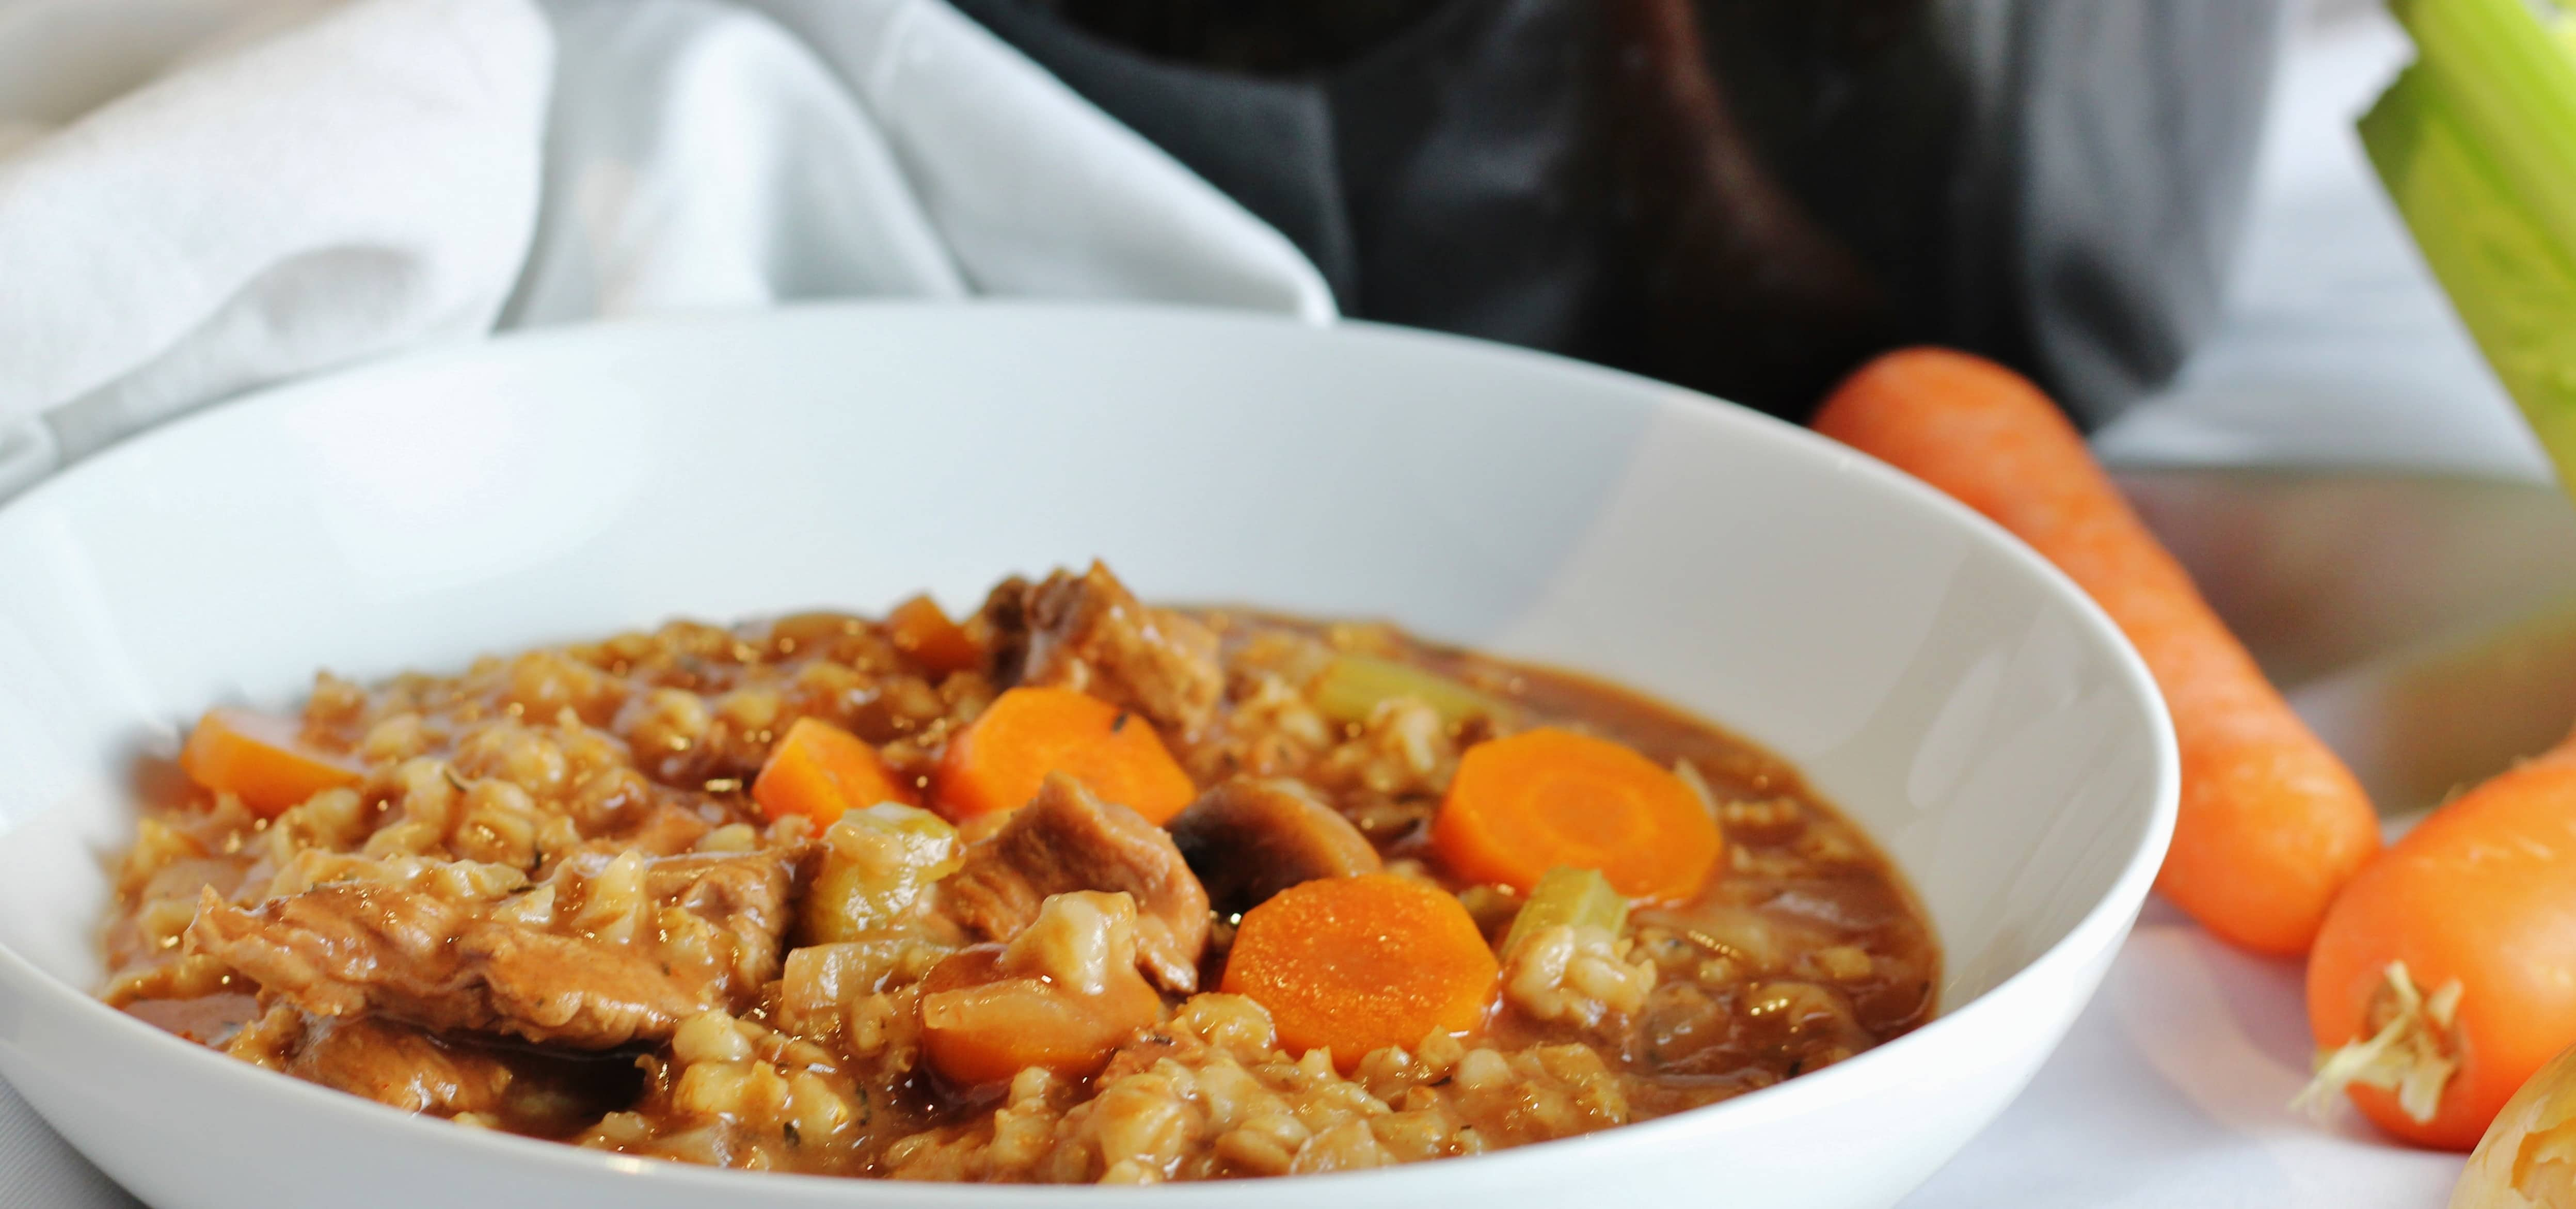 Beef and Barley Vegetable Stew - Searching for Spice